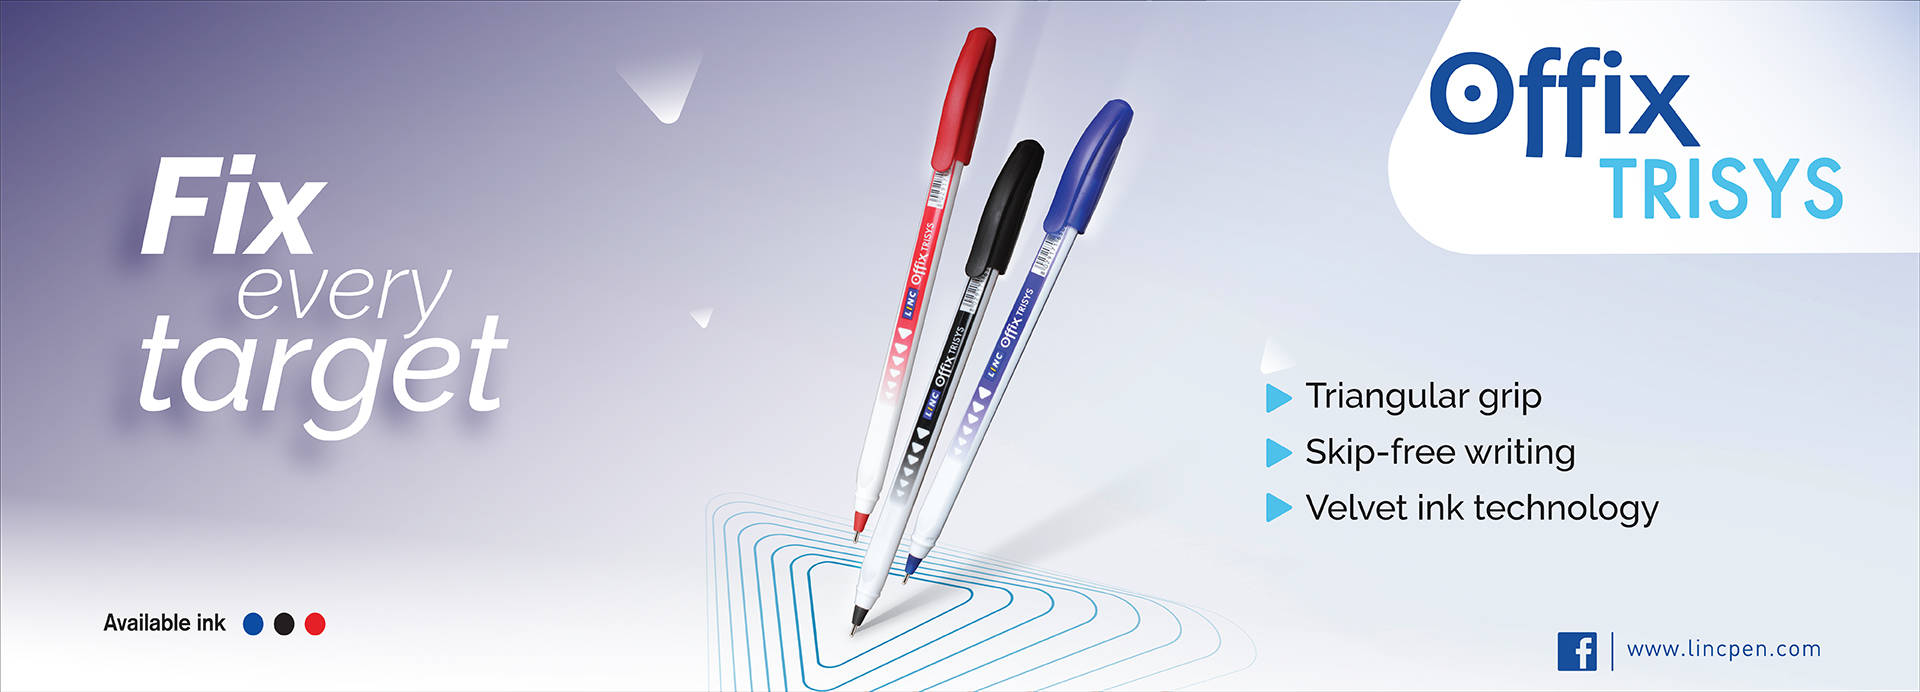 Linc Offix Trisys Ball Point Pen